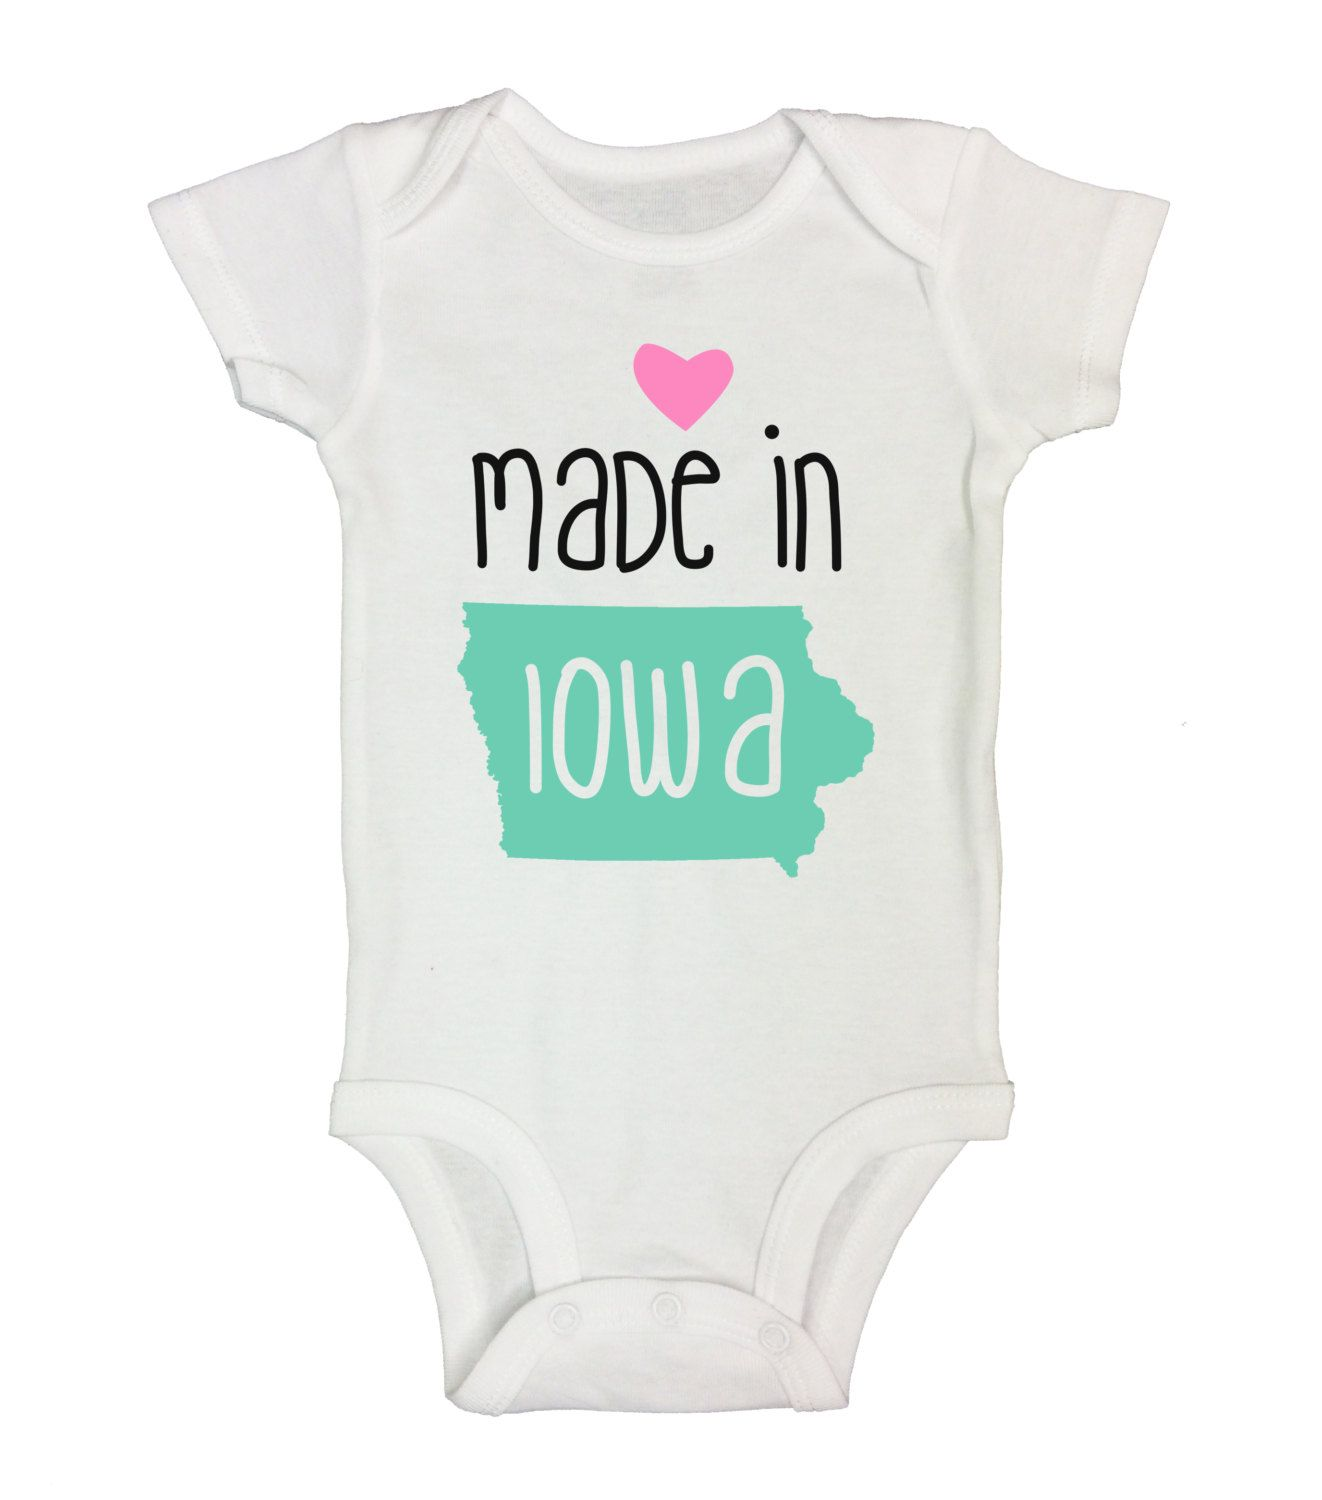 Cute Retro Style England Silhouette Onesies Long Sleeve Cotton Rompers for Unisex Baby